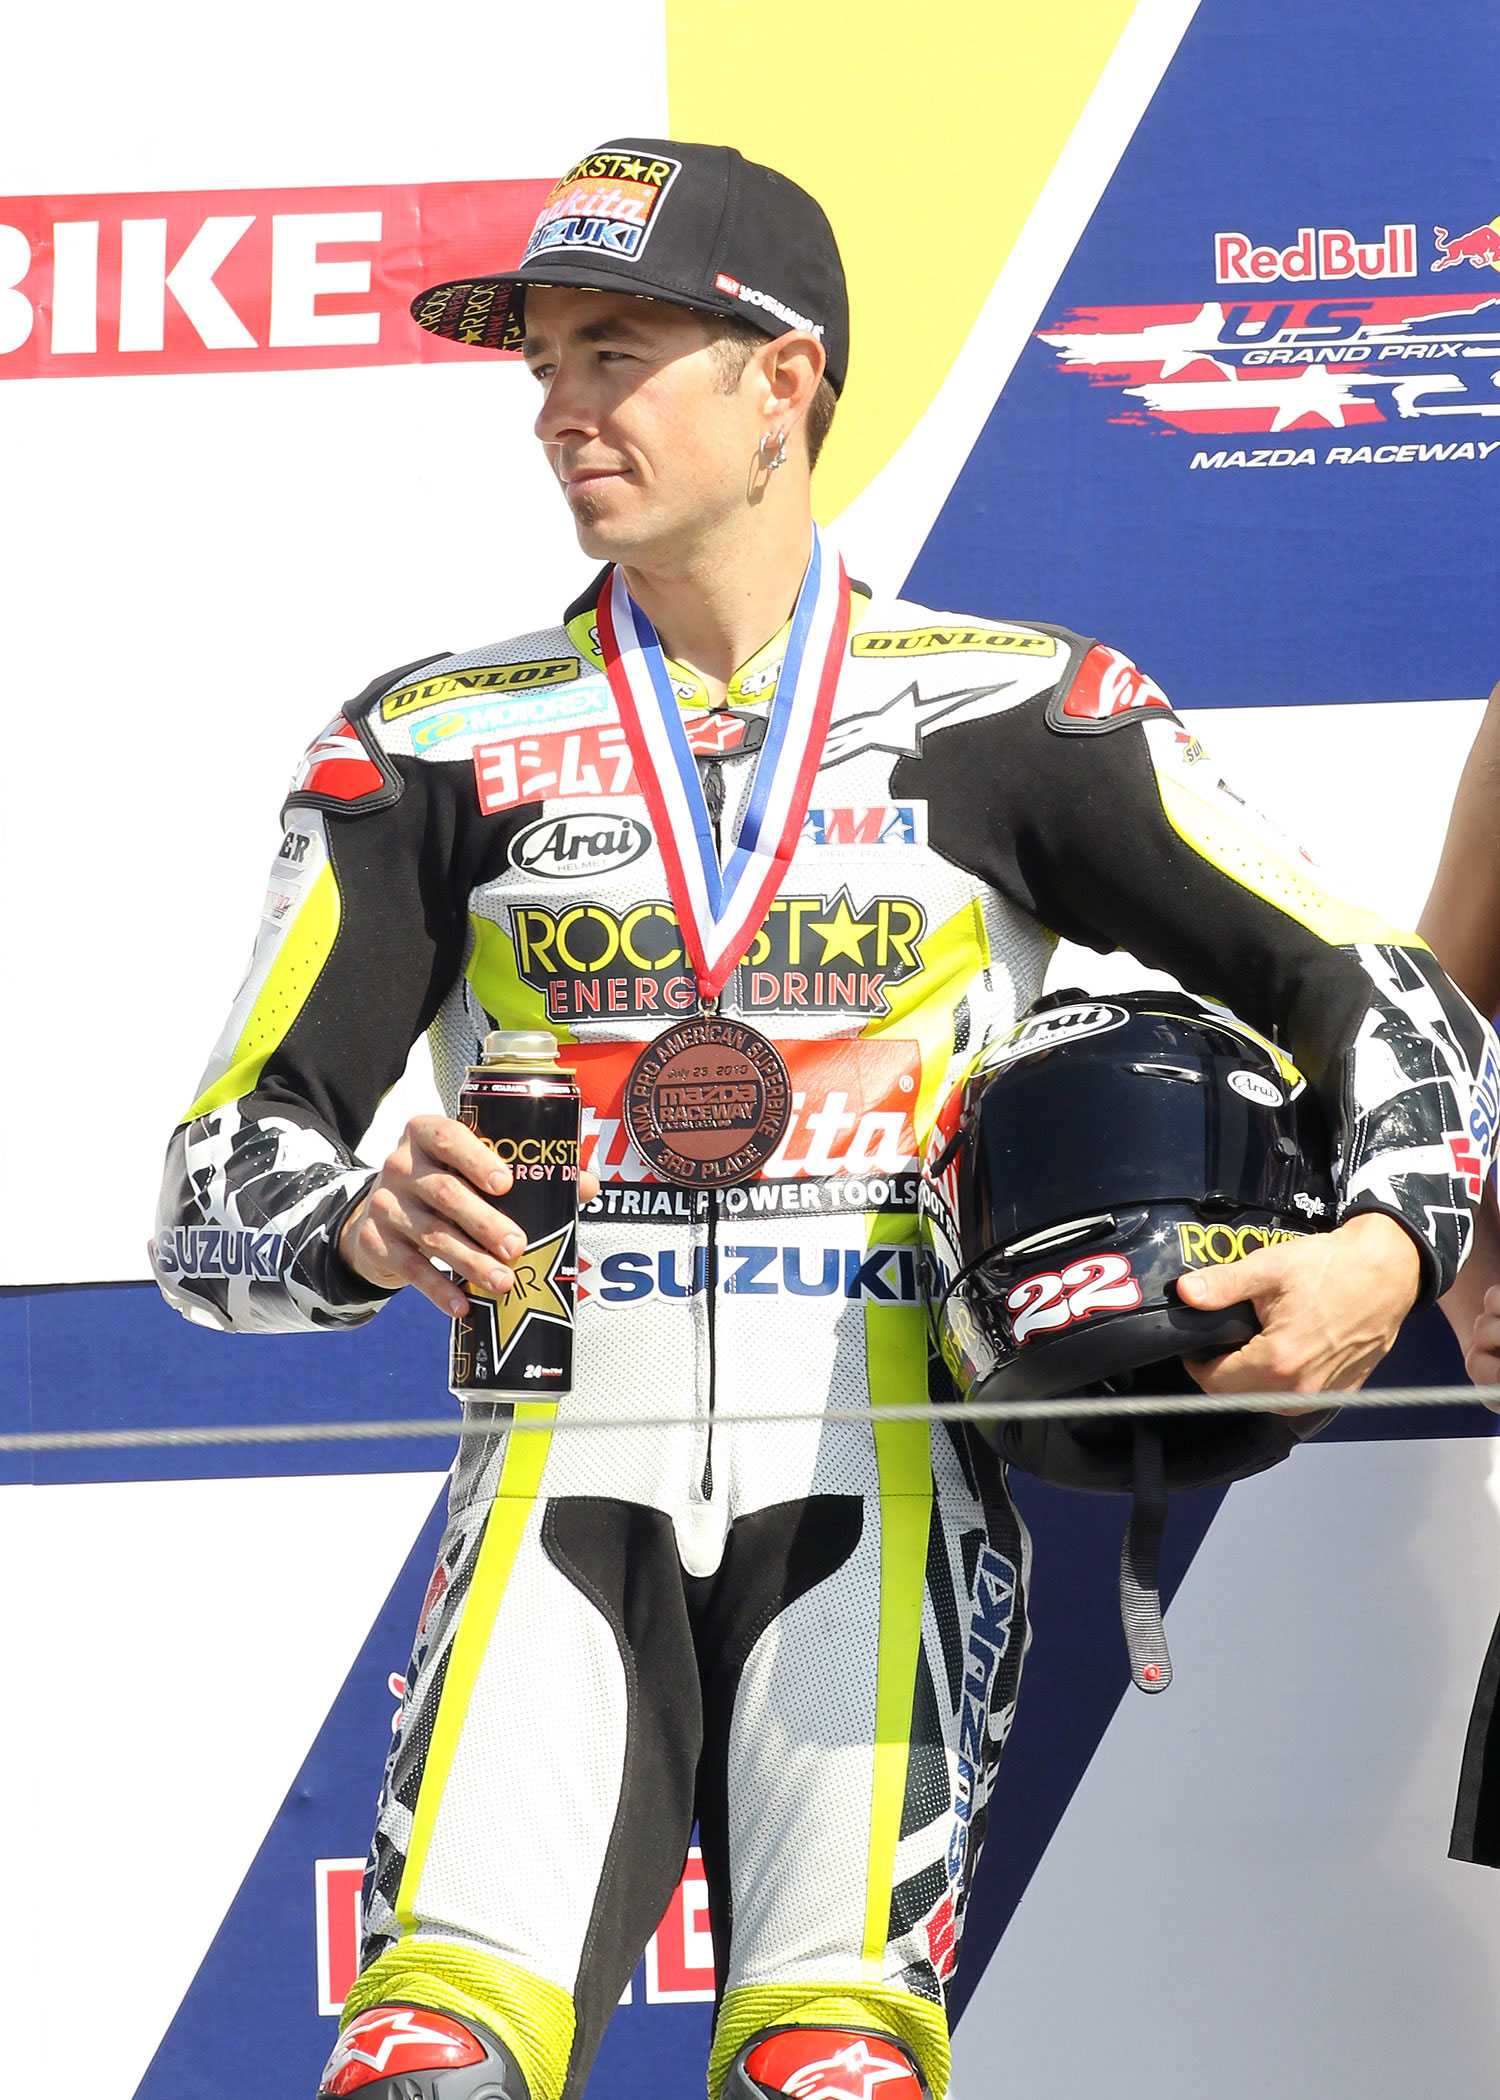 ROCKSTAR MAKITA SUZUKI ON THE PODIUM AT LAGUNA SECA